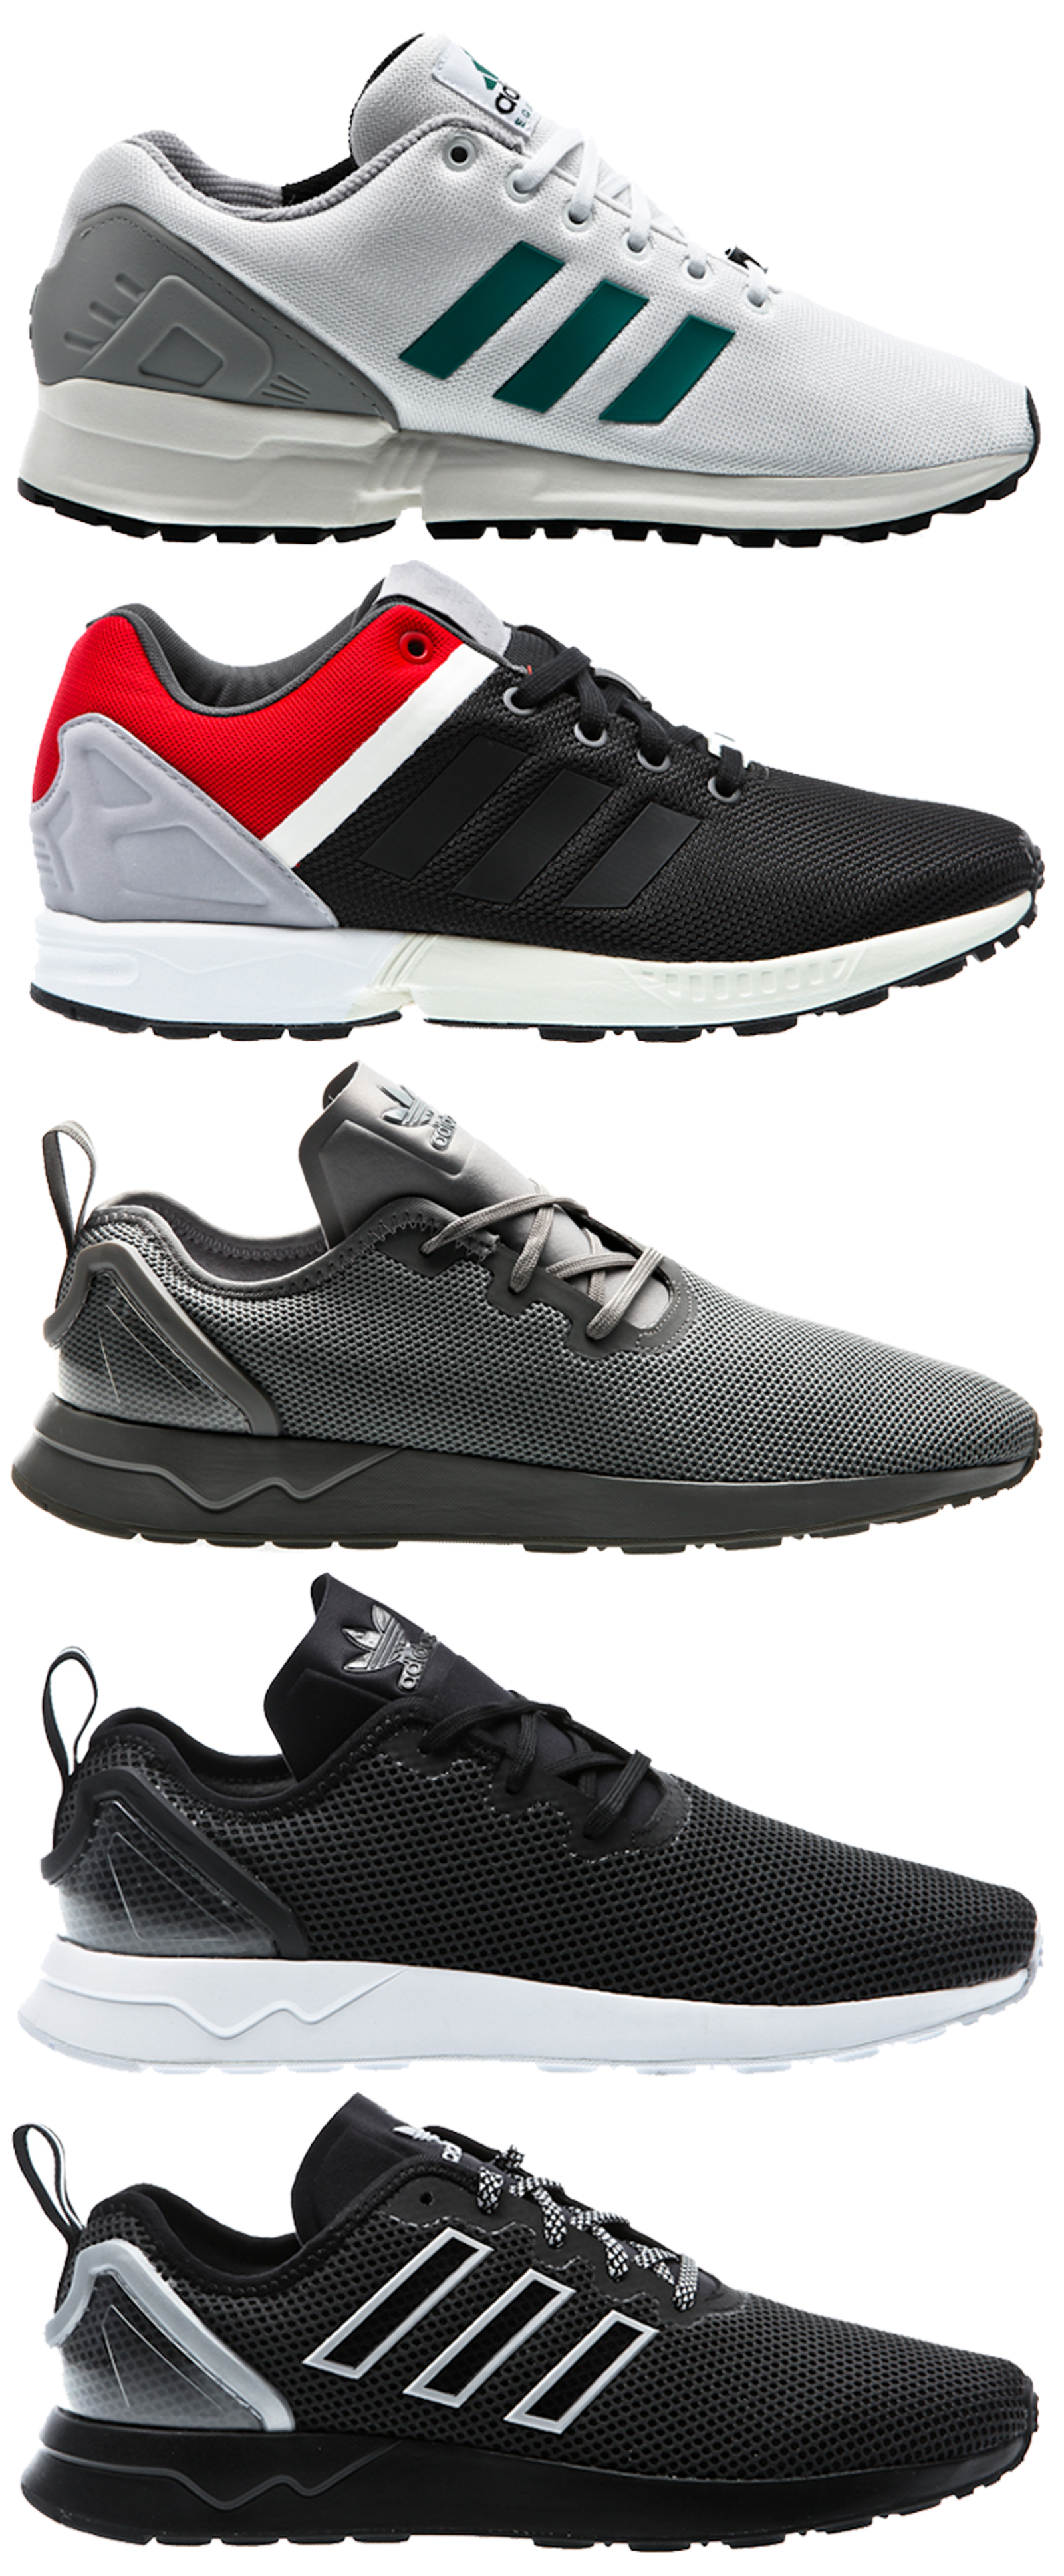 half off a951b 97f26 Adidas ZX flux racer ADV ASYM men sneaker men s shoes runnings shoes